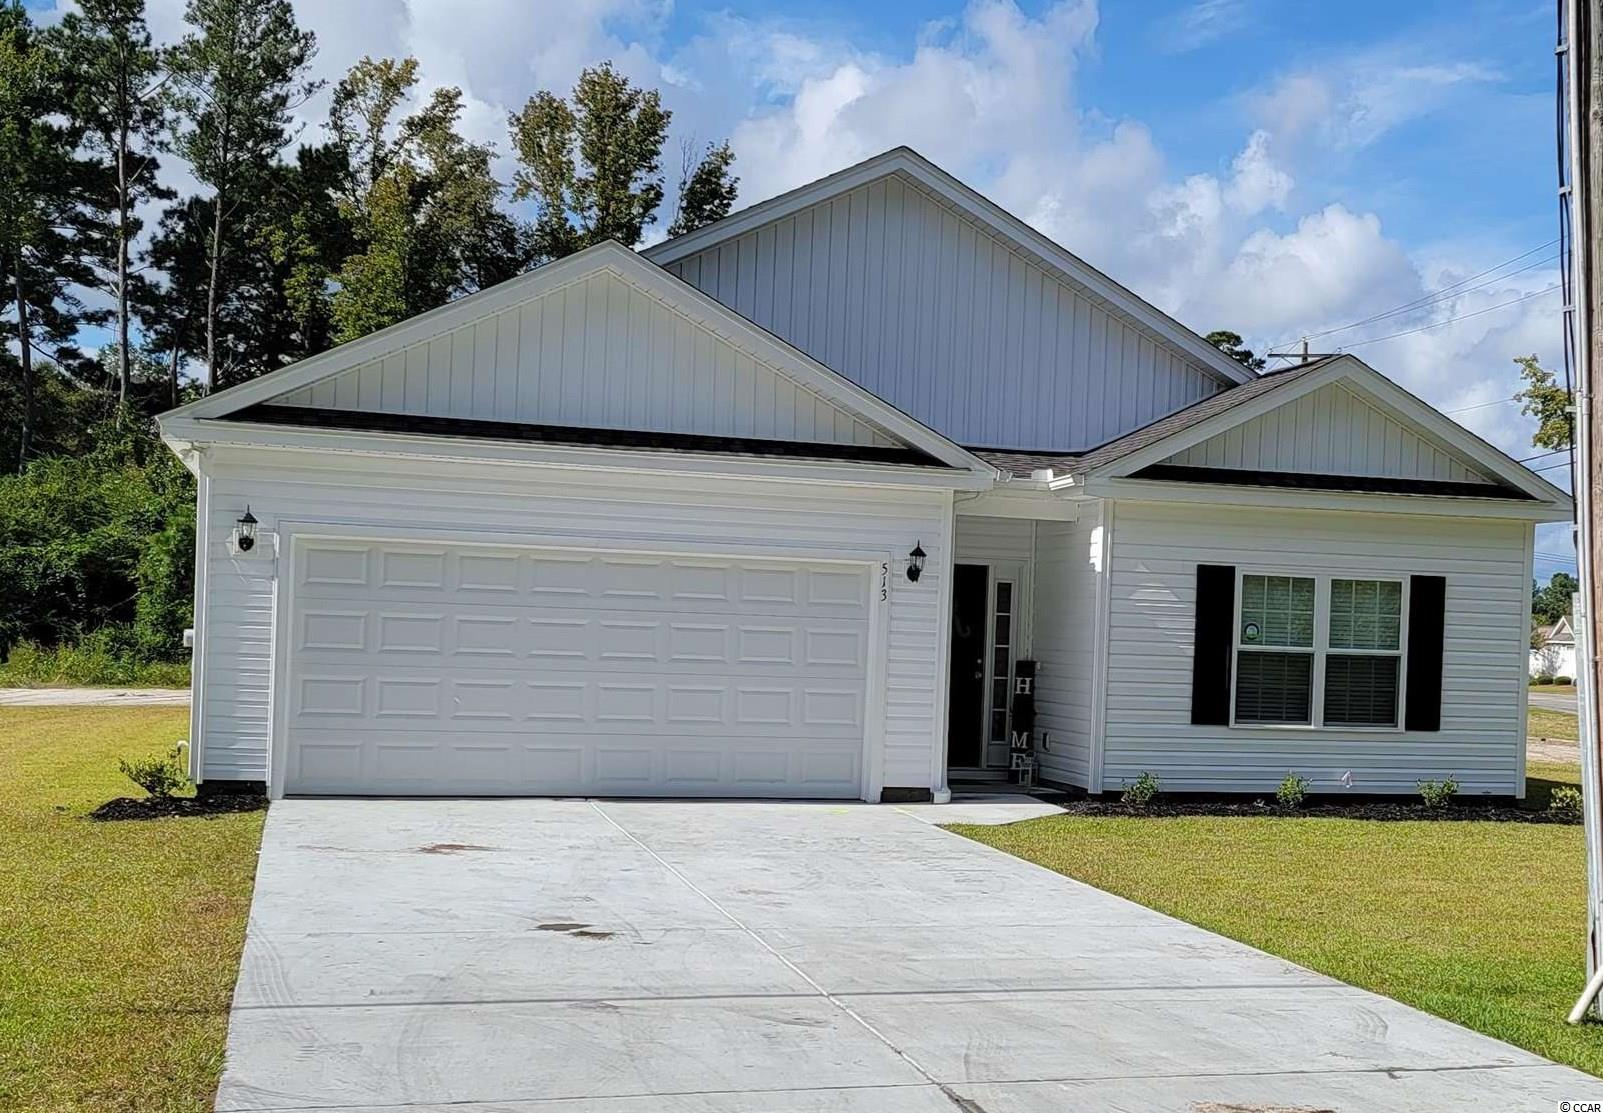 "No HOA! No HOA! No HOA! No HOA! No HOA! No HOA! No HOA! No HOA!  This Beautiful ""Topsail Plan"" Plan is Located in Quattlebaum Acres and  Features include but are not limited to 3 Bedrooms 2 Baths, 2 Car Garage, Great Open Floor Plan, Vaulted and Trayed Ceilings, 2 Ceiling Fans, and Vinyl Windows, Plans also include Separate 10' x 14' Concrete Patio, Sidewalks to Front Entry and Driveway. These new Homes also include 36"" Profiled Kitchen Cabinets with Top Molding Trim and Door Knobs, Stainless Steel Appliances, Kitchen Pantry, Linen Closet, Completely Trimmed and Painted Garage with Drop Down Storage Access, which is Floored for your convenience, and Electronic Garage Door with Remote Openers. ""Low E"" Energy Efficient Windows, Upgraded Insulation Package, Landscaped, Sodded Yard, and so much more.  All of the homes are built with a ""Maintenance Free"" Lifestyle in mind. Quattlebaum Acres conveniently located near Shopping, Medical Offices and Hospitals, Restaurants,  and Schools.  Call or visit us online today and find out why This Builder is The Areas Premier Local Builder! Other Floor Plans, Inventory Homes and Custom Plans are Available. Call the Listing Agent for New Homes Availability and to make an Appointment to see Builder's other Homes. Some Lots may have additional Premiums!"